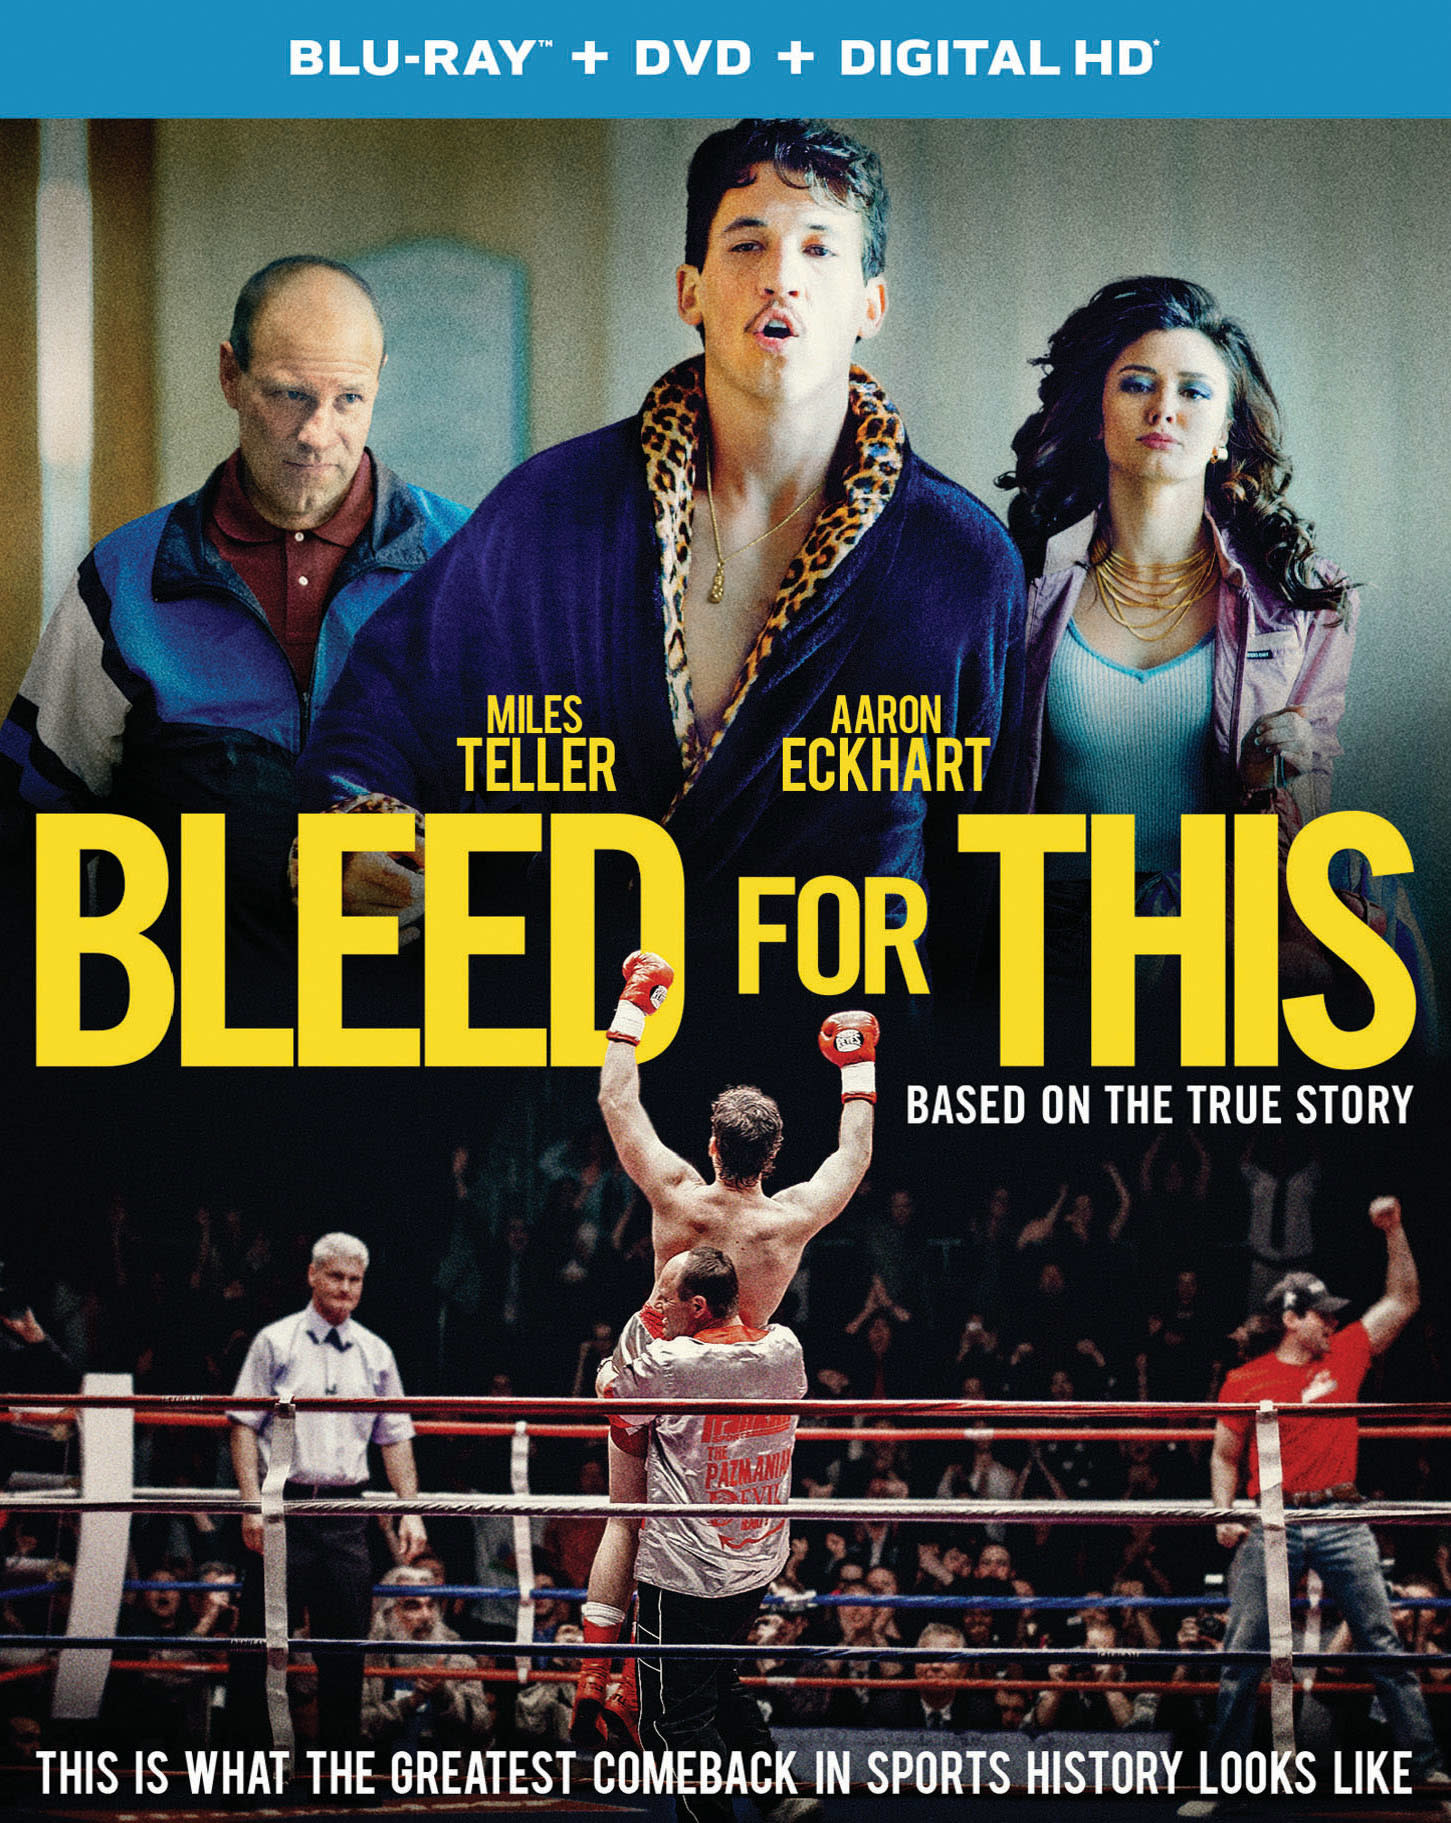 Bleed for This (DVD + Digital) [Blu-ray]